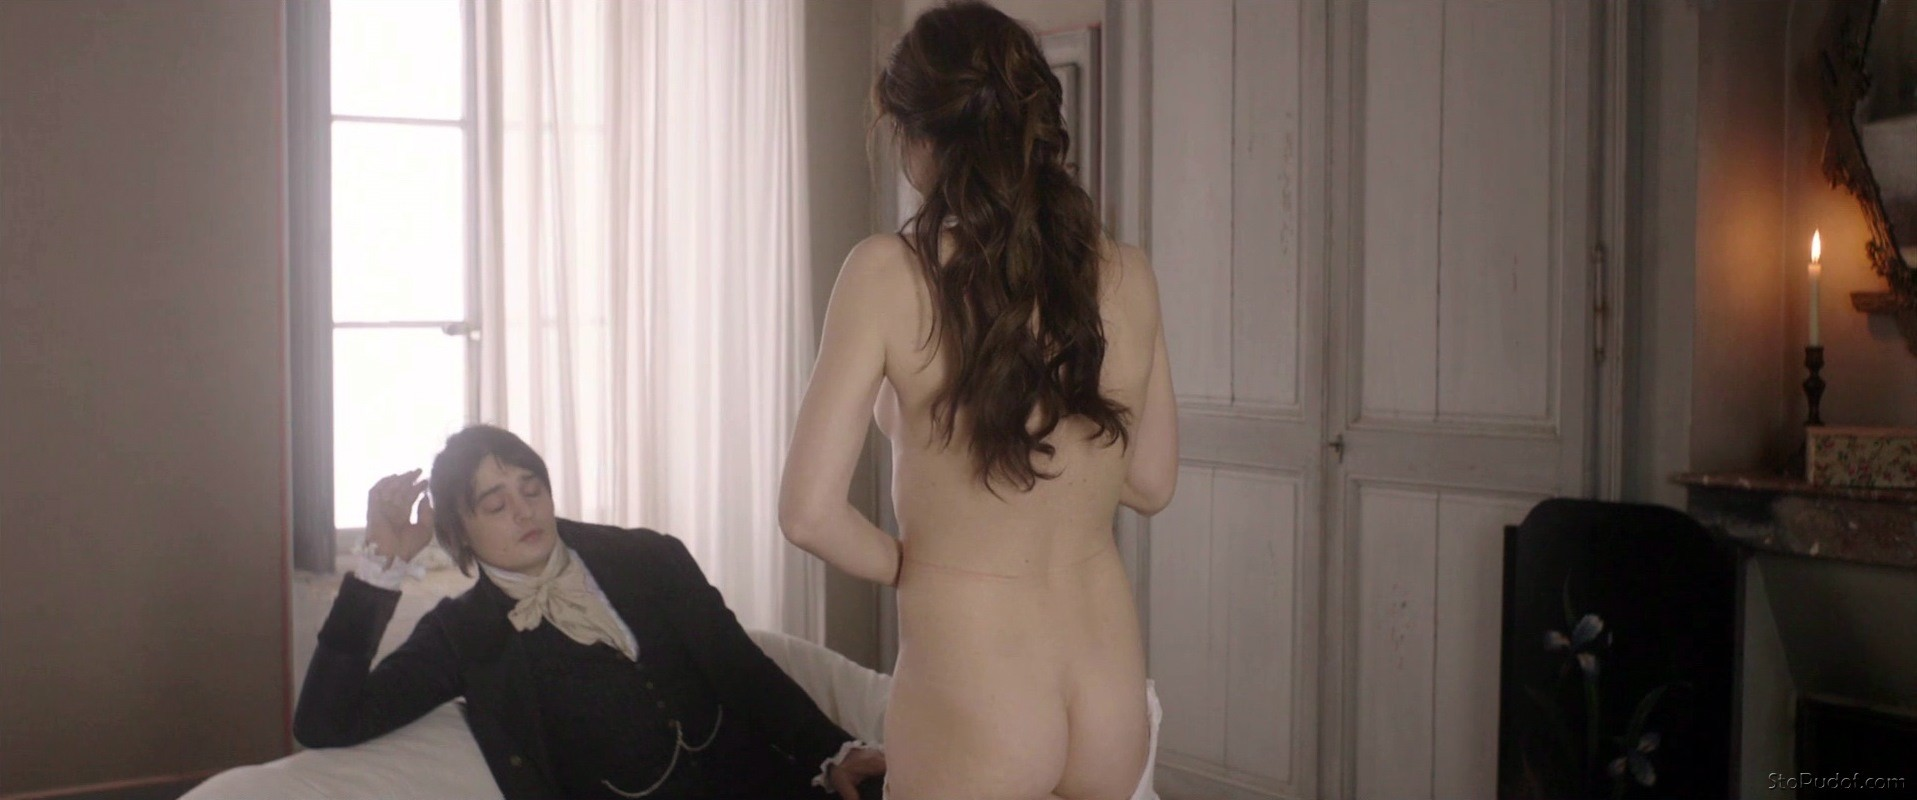 nude leaked pictures of Charlotte Gainsbourg - UkPhotoSafari